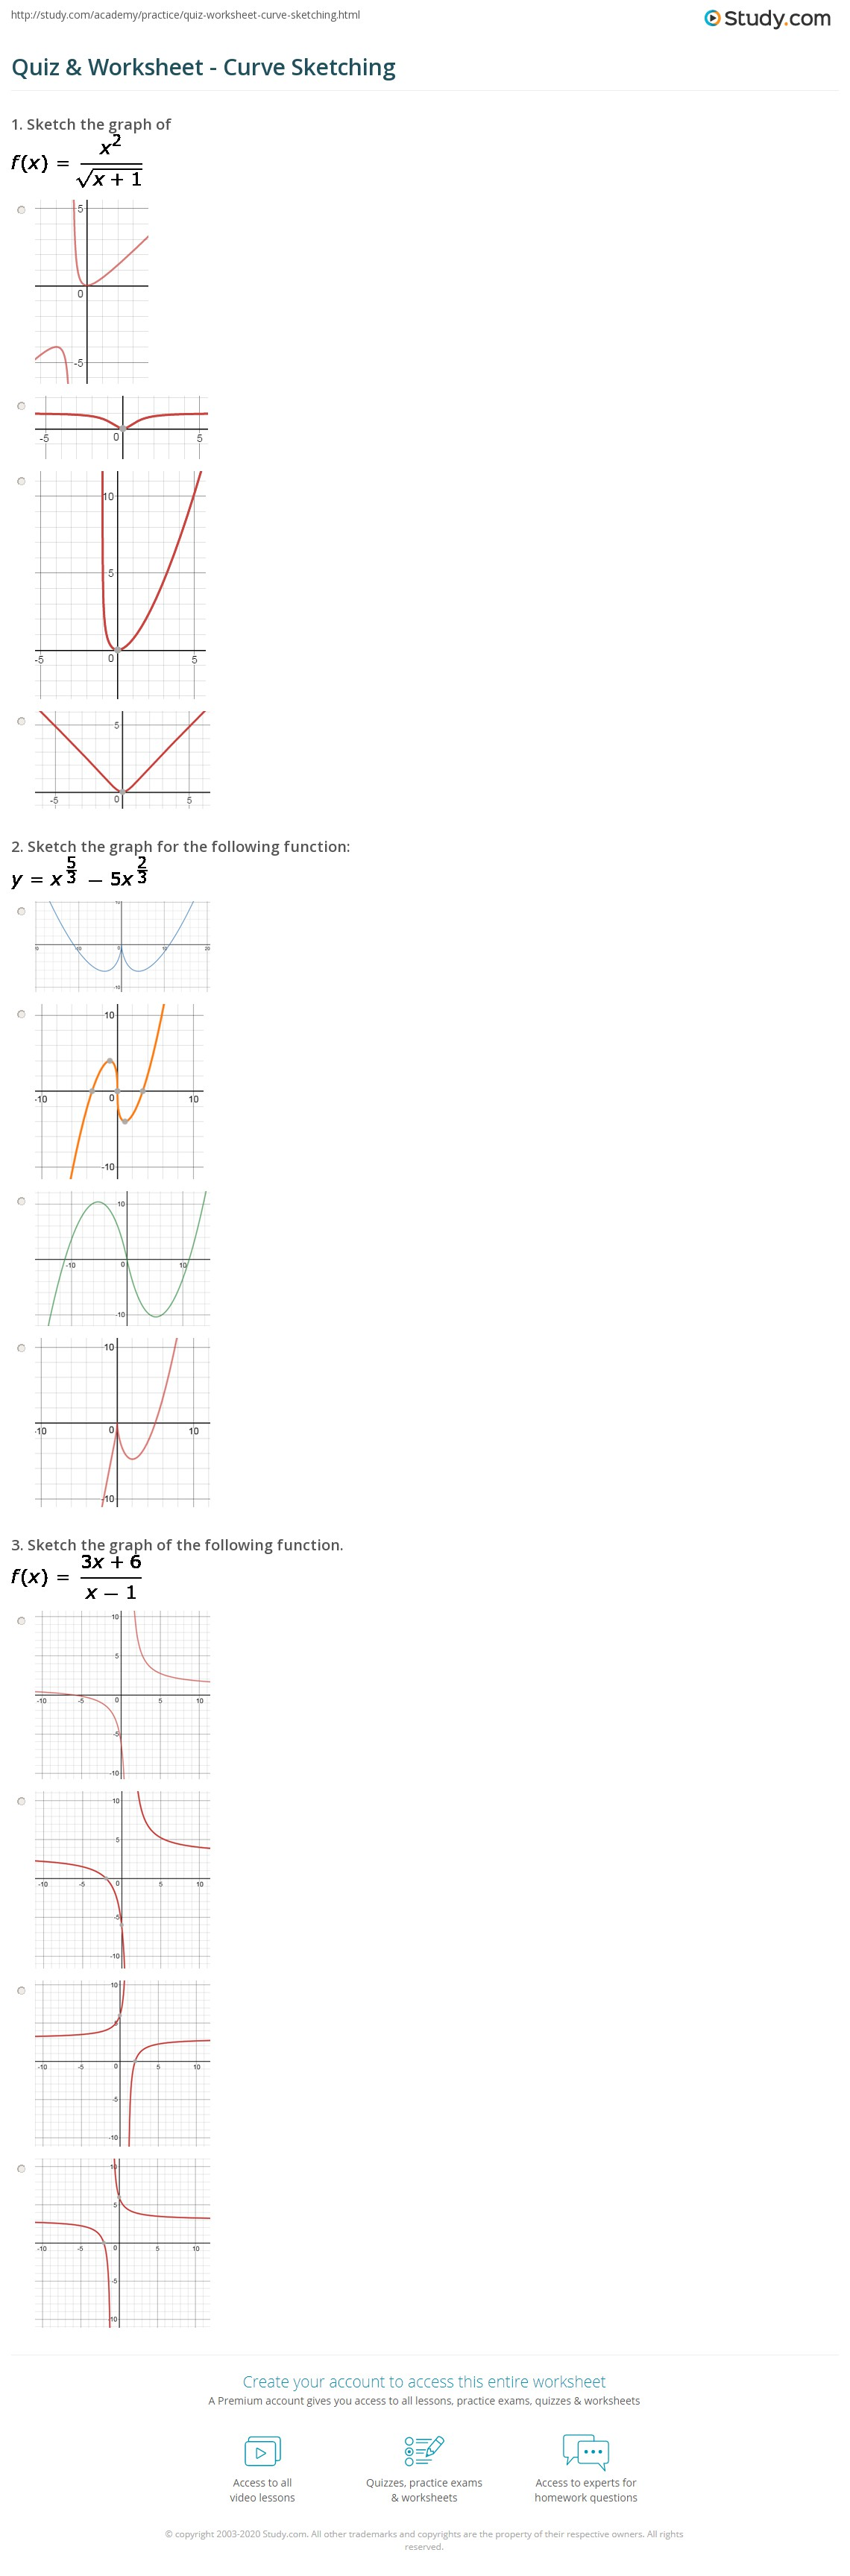 Free Worksheet Graphing Polynomials Worksheet sketch the graph of each function worksheet katinabags com print graphing analyzing rational functions roots polynomial functions